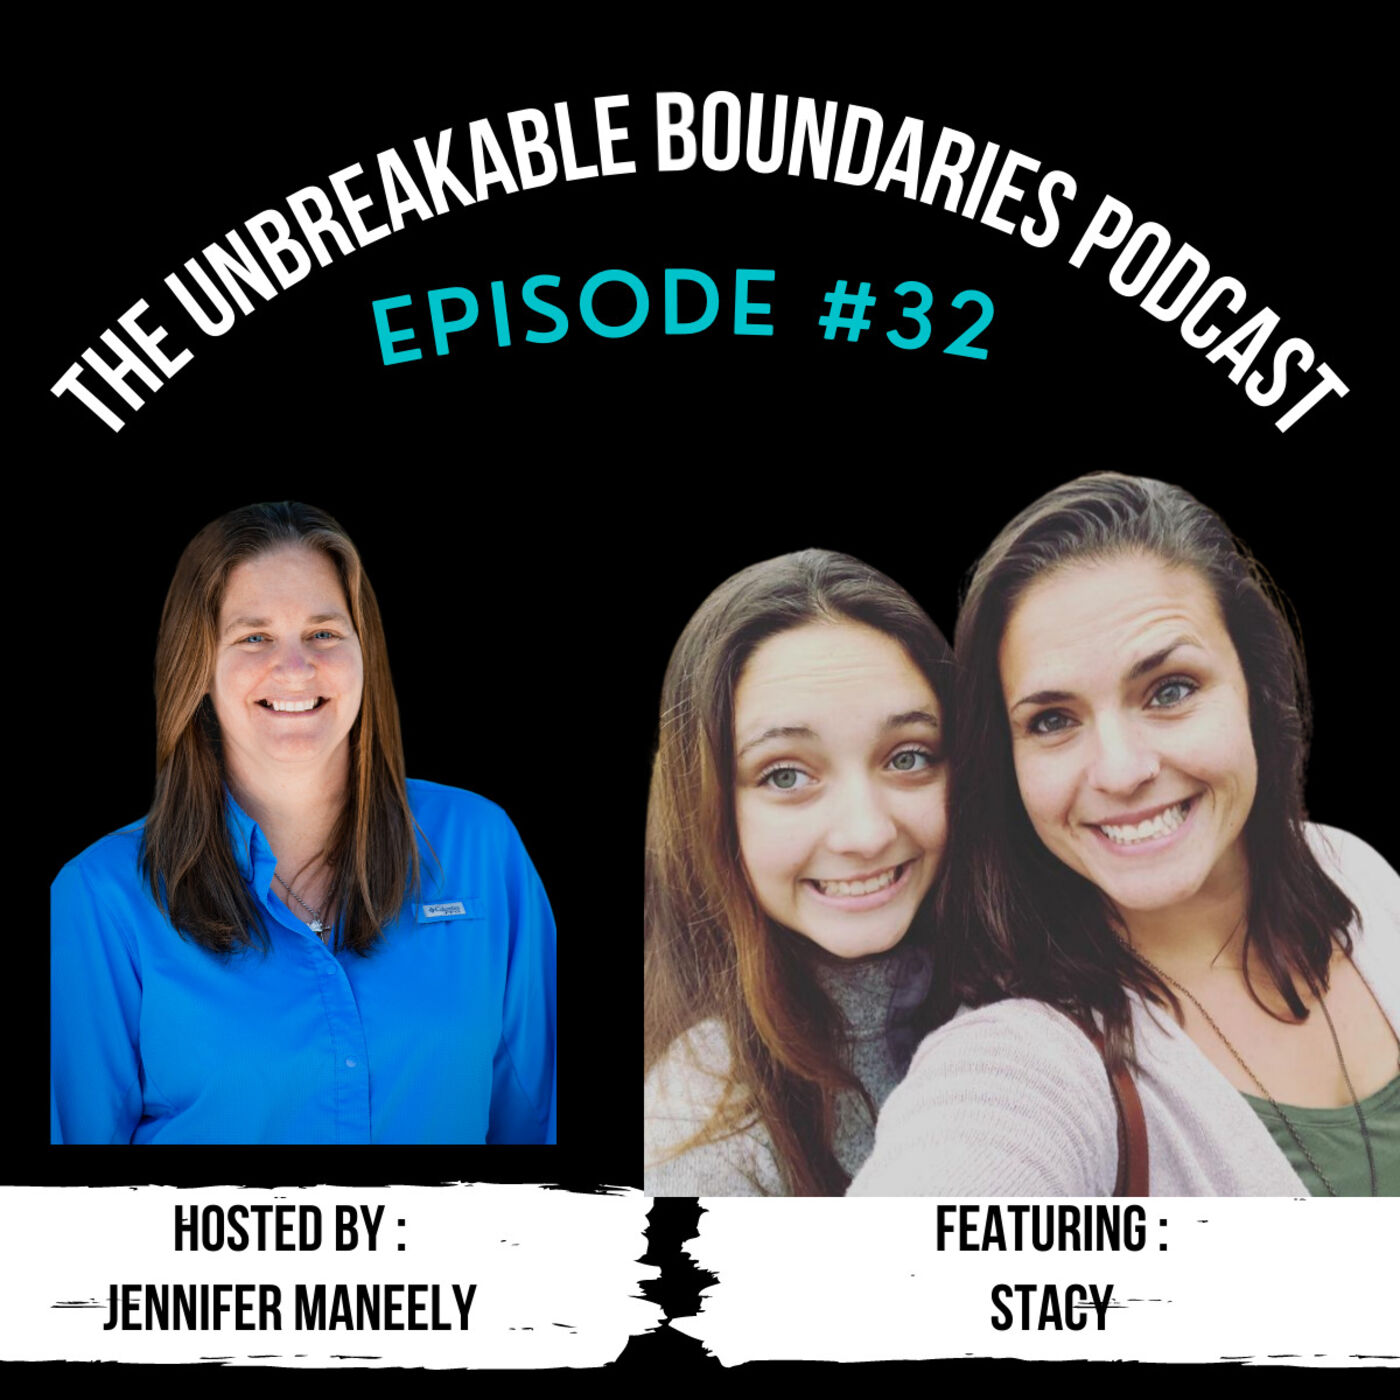 #32 Stacy shares with us the wild ride she put her family through